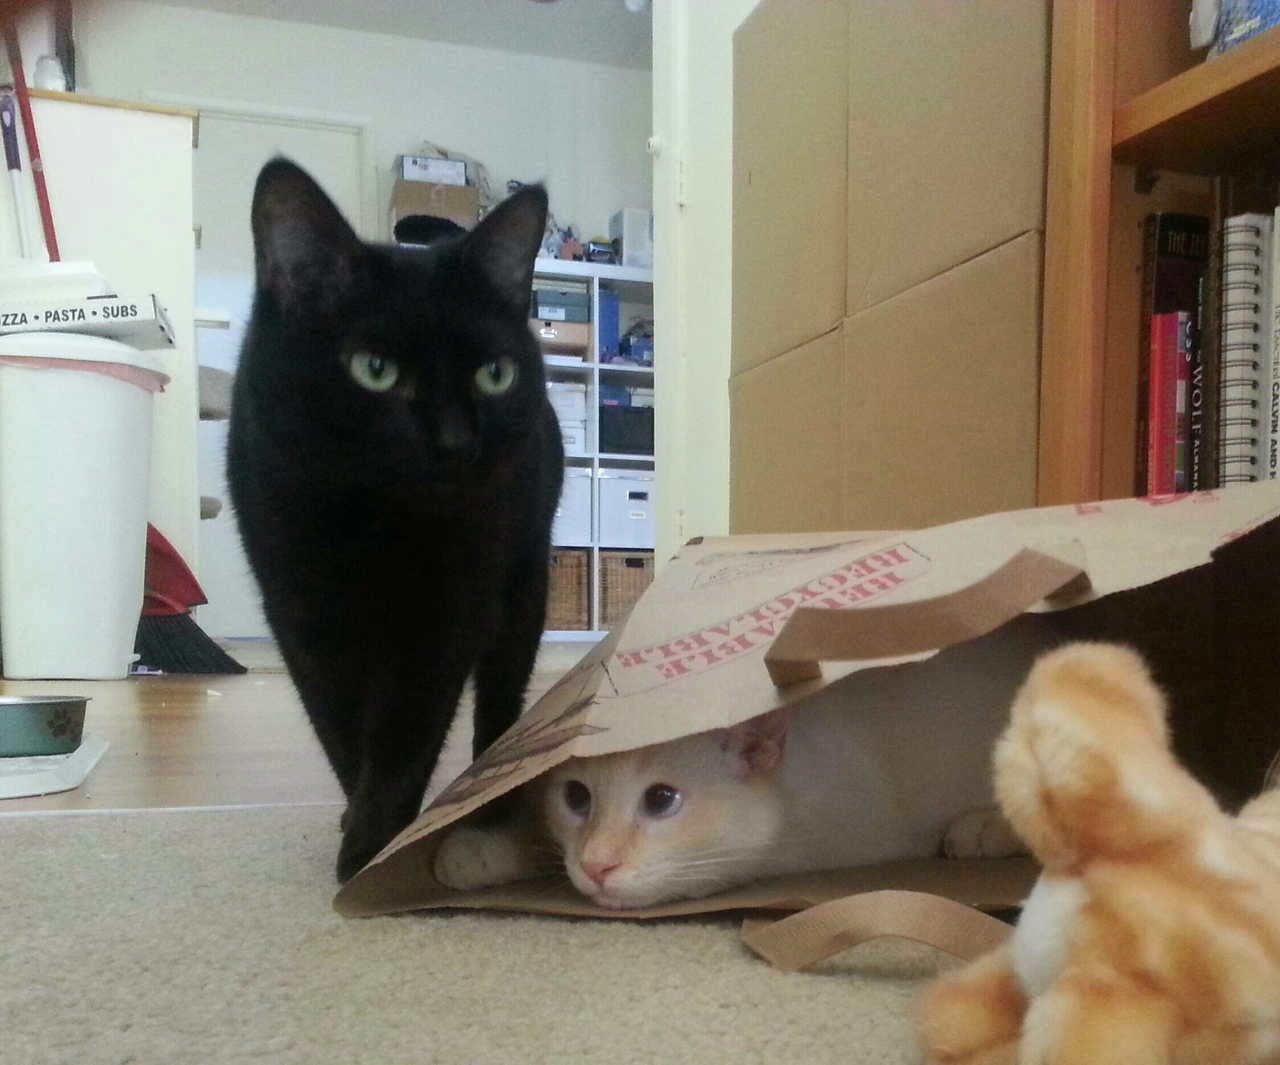 Funny cats - part 86 (40 pics + 10 gifs), cat ready to ambush other cat